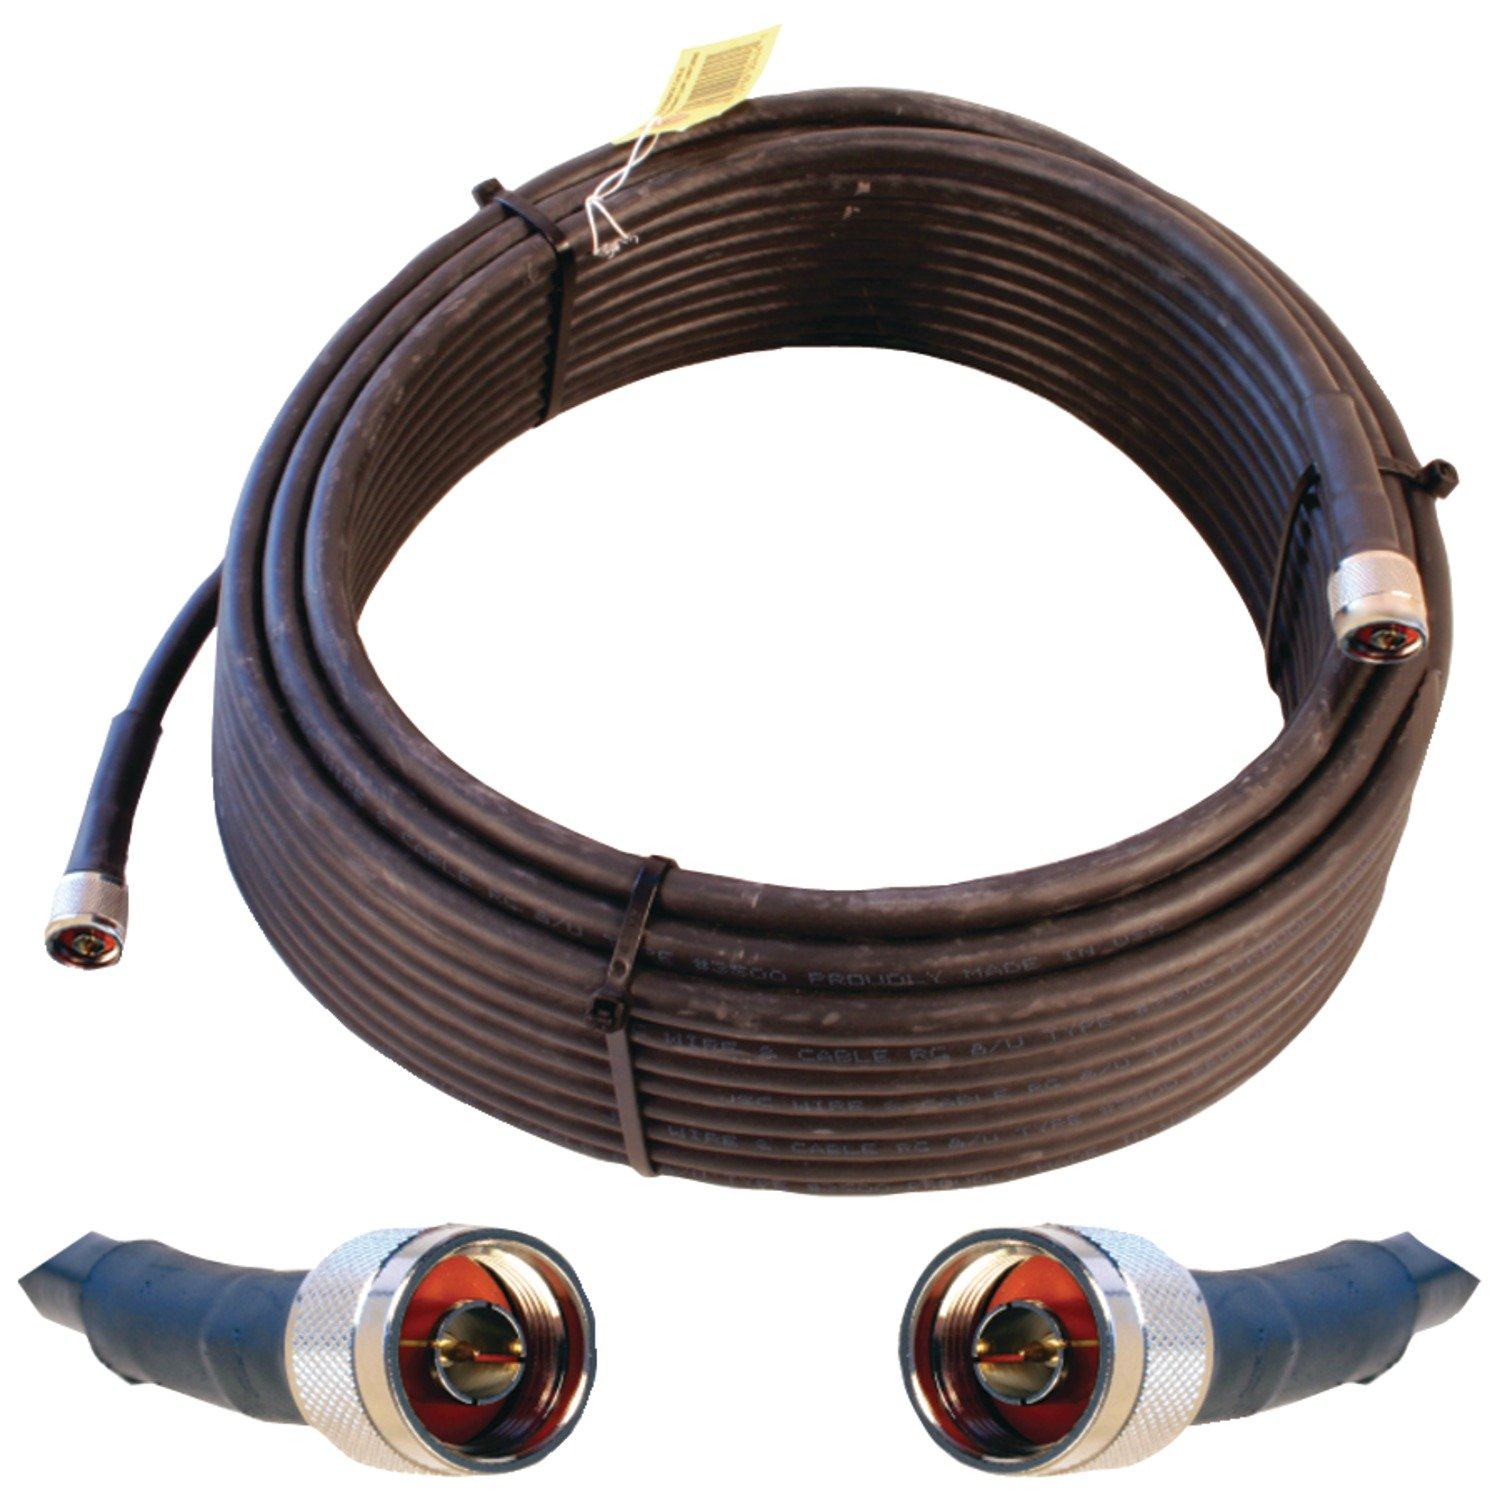 Wilson Electronics 75 ft. Black WILSON-400 Ultra Low Loss Coax Cable (N-Male to NMale)( 952375) by weBoost